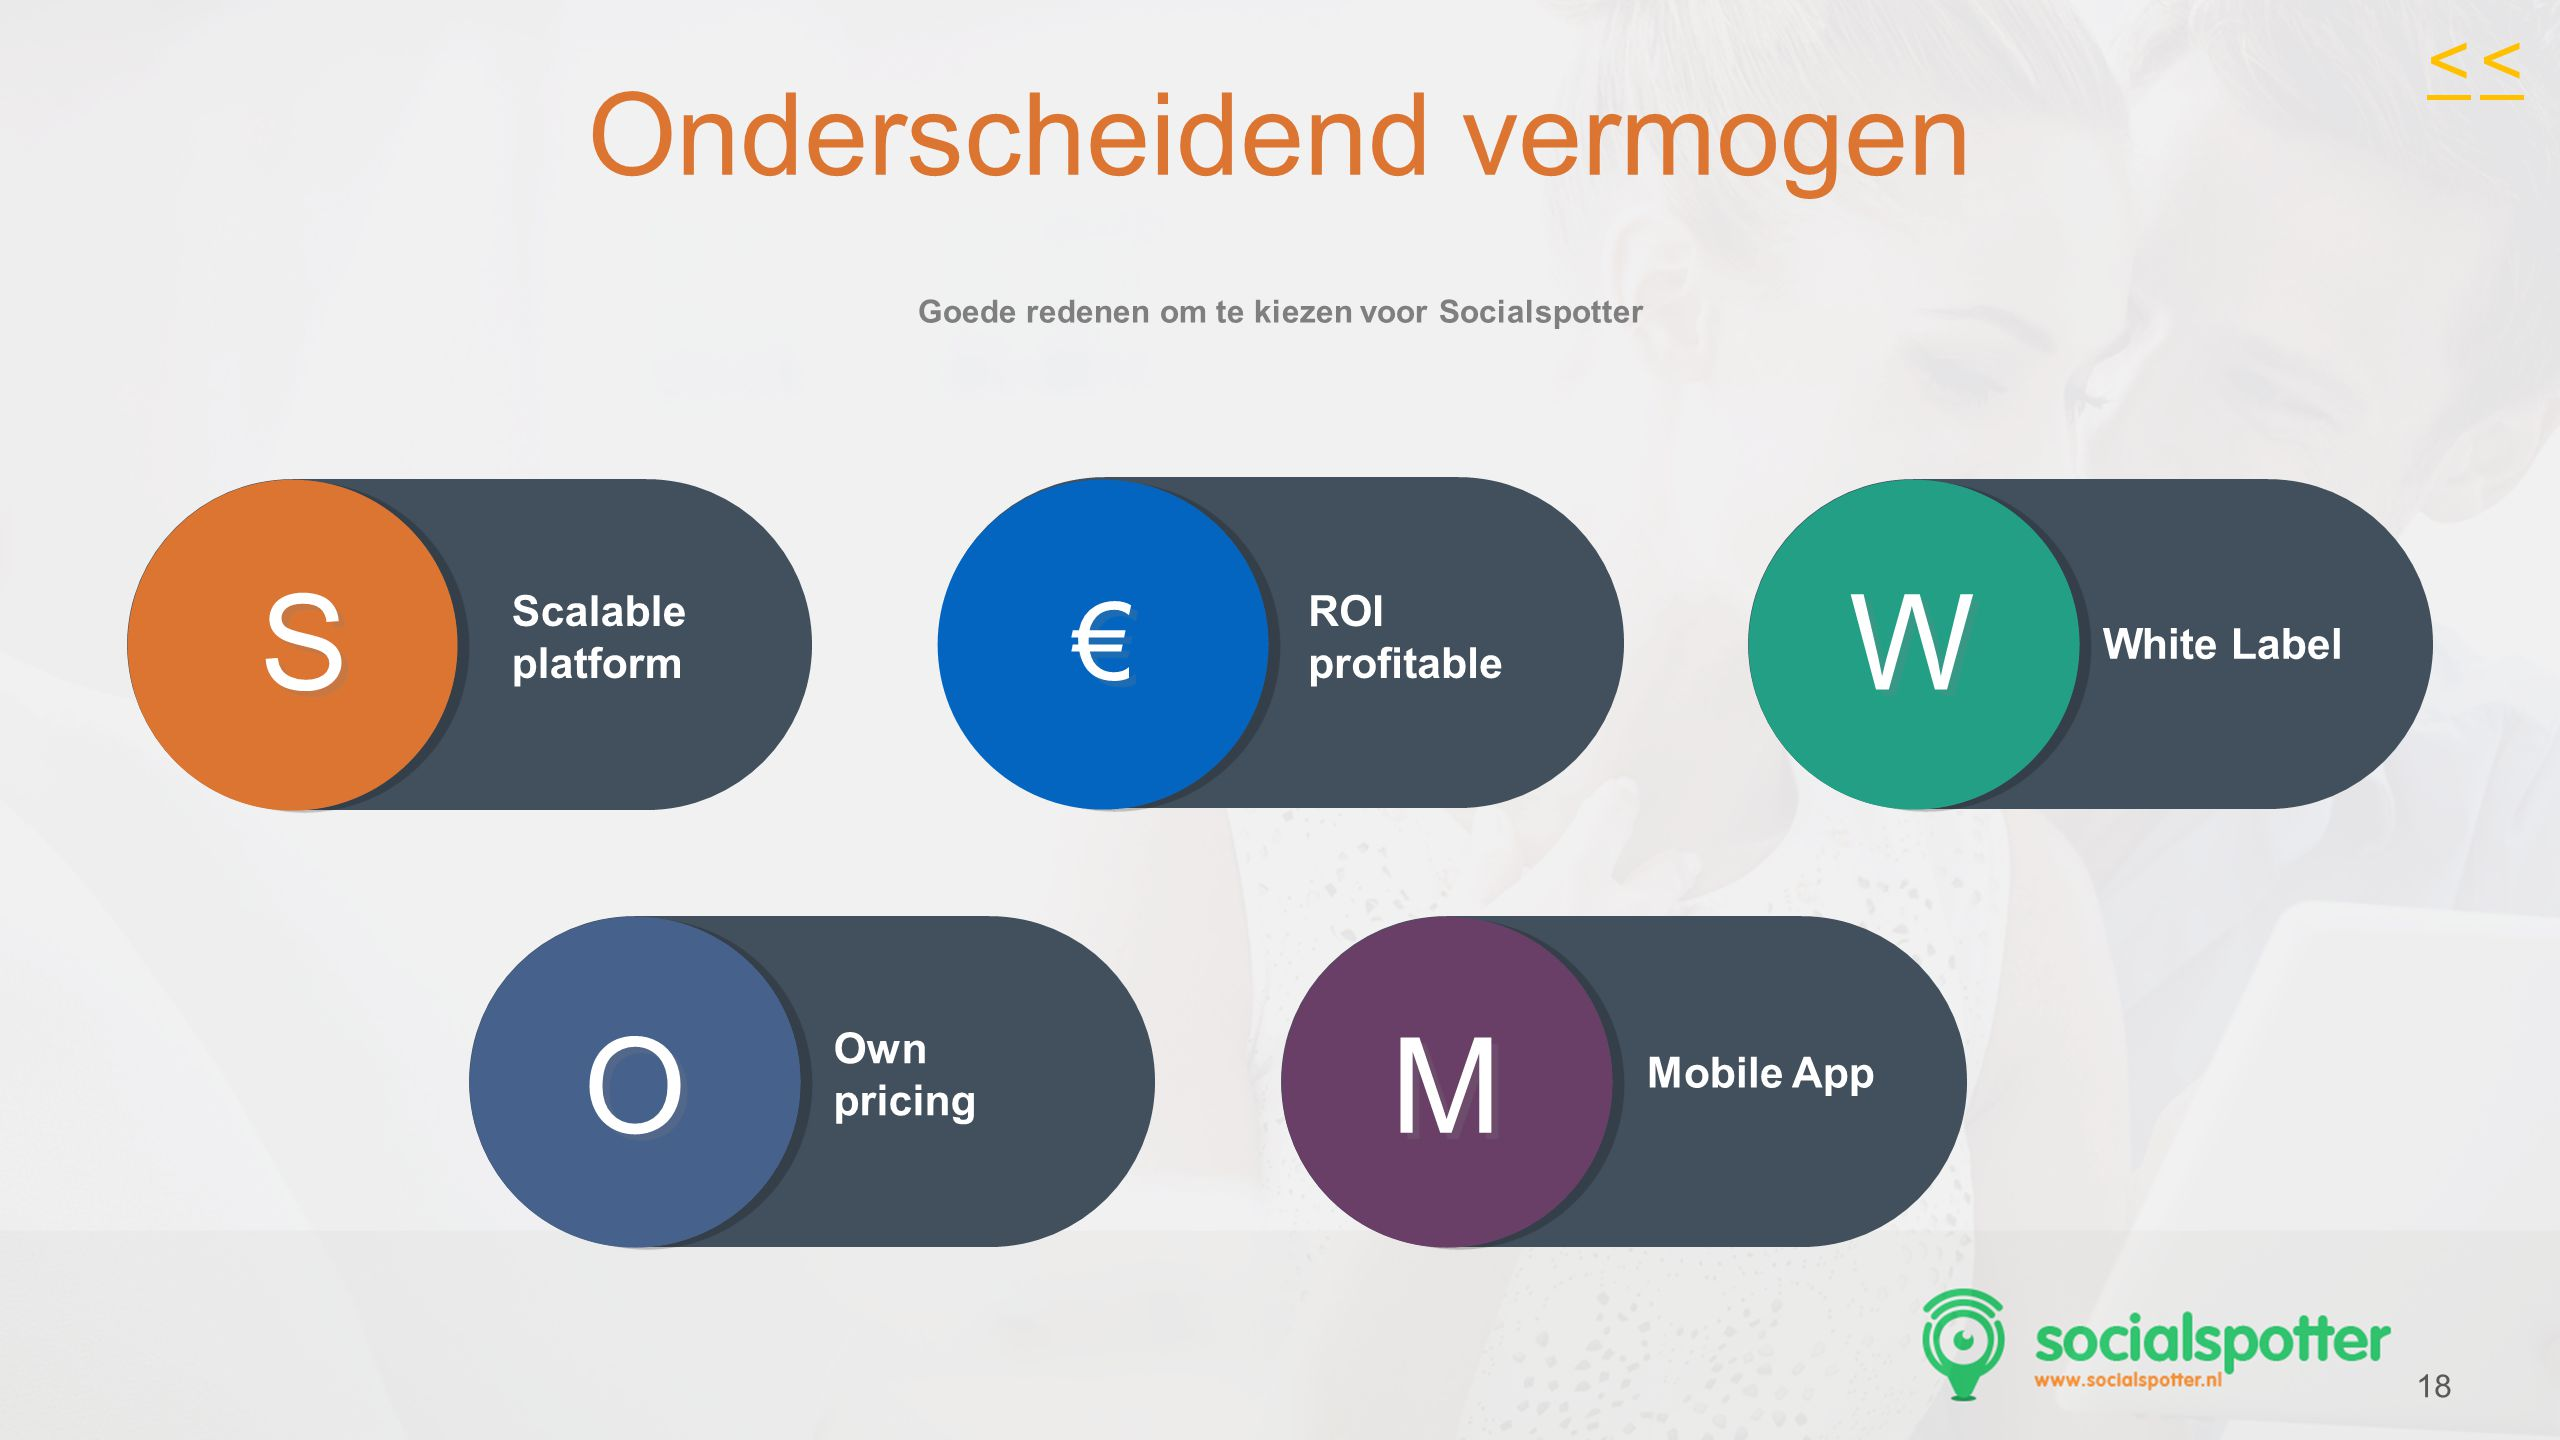 SocMed PRO - Presentation Name Goes Here Onderscheidend vermogen S S O O € € M M W W Scalable platform Own pricing ROI profitable Mobile App White Lab